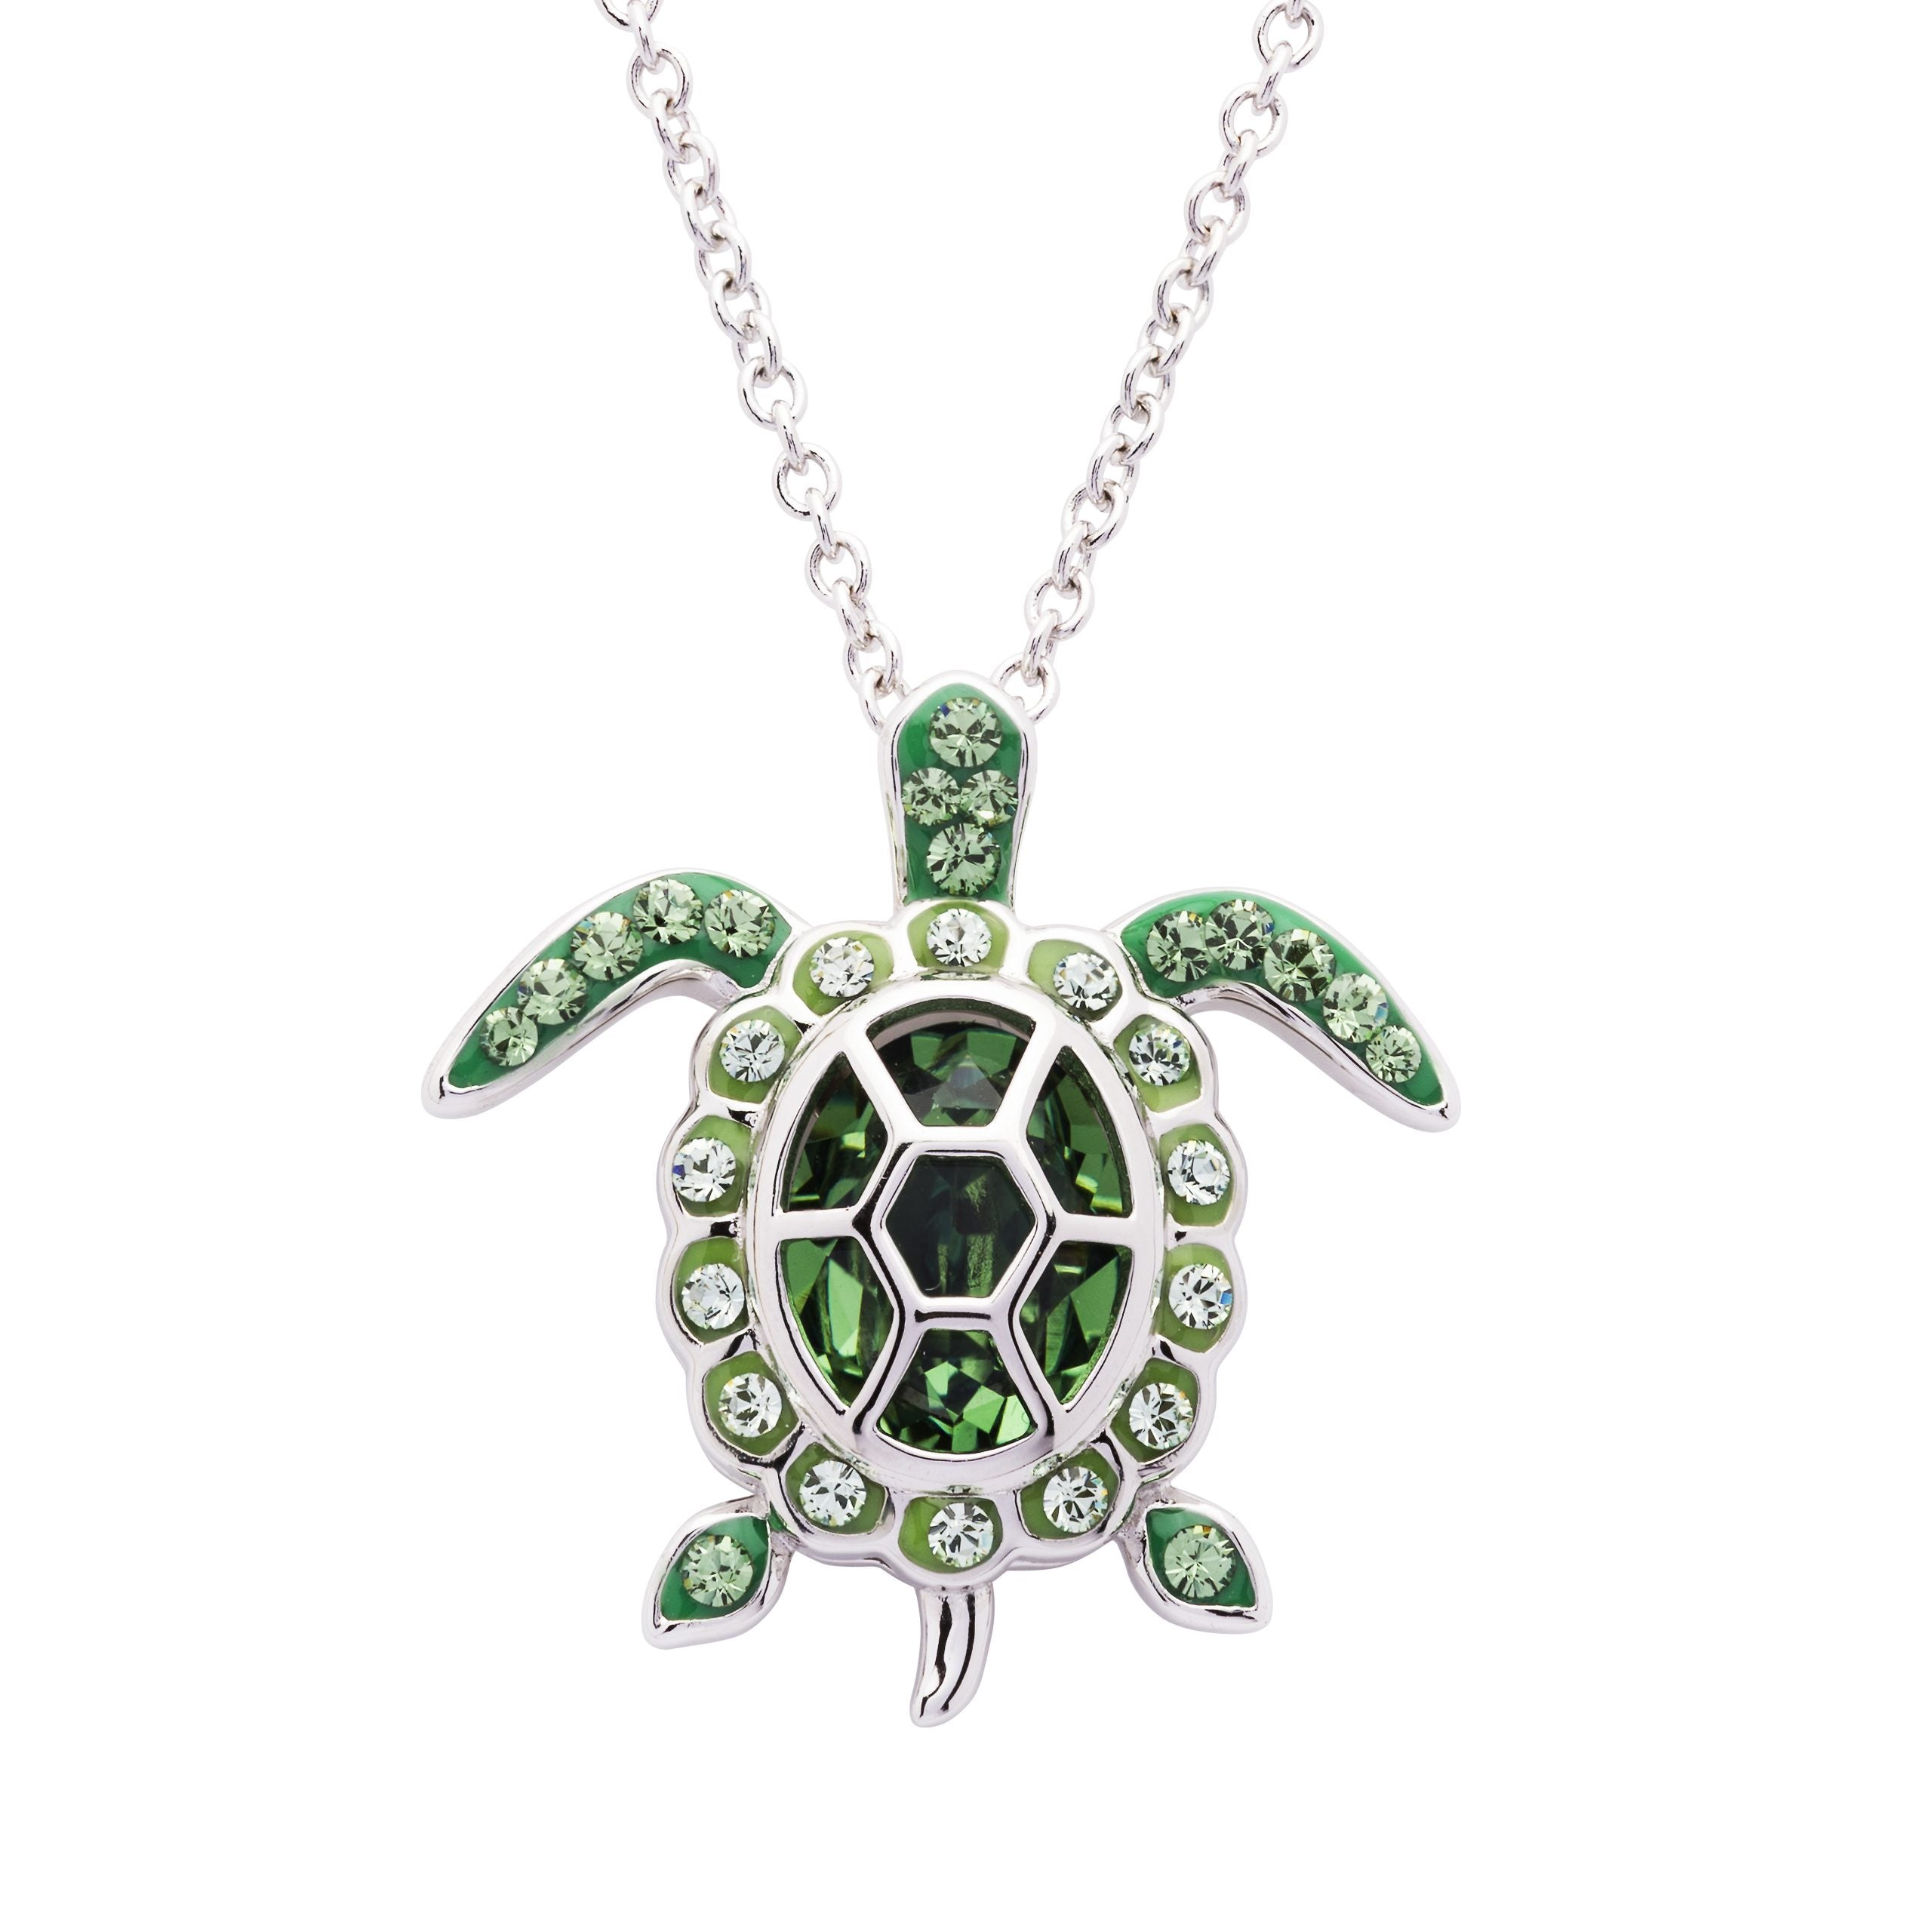 August Turtle Birthstone Pendant with Swarovski Crystals